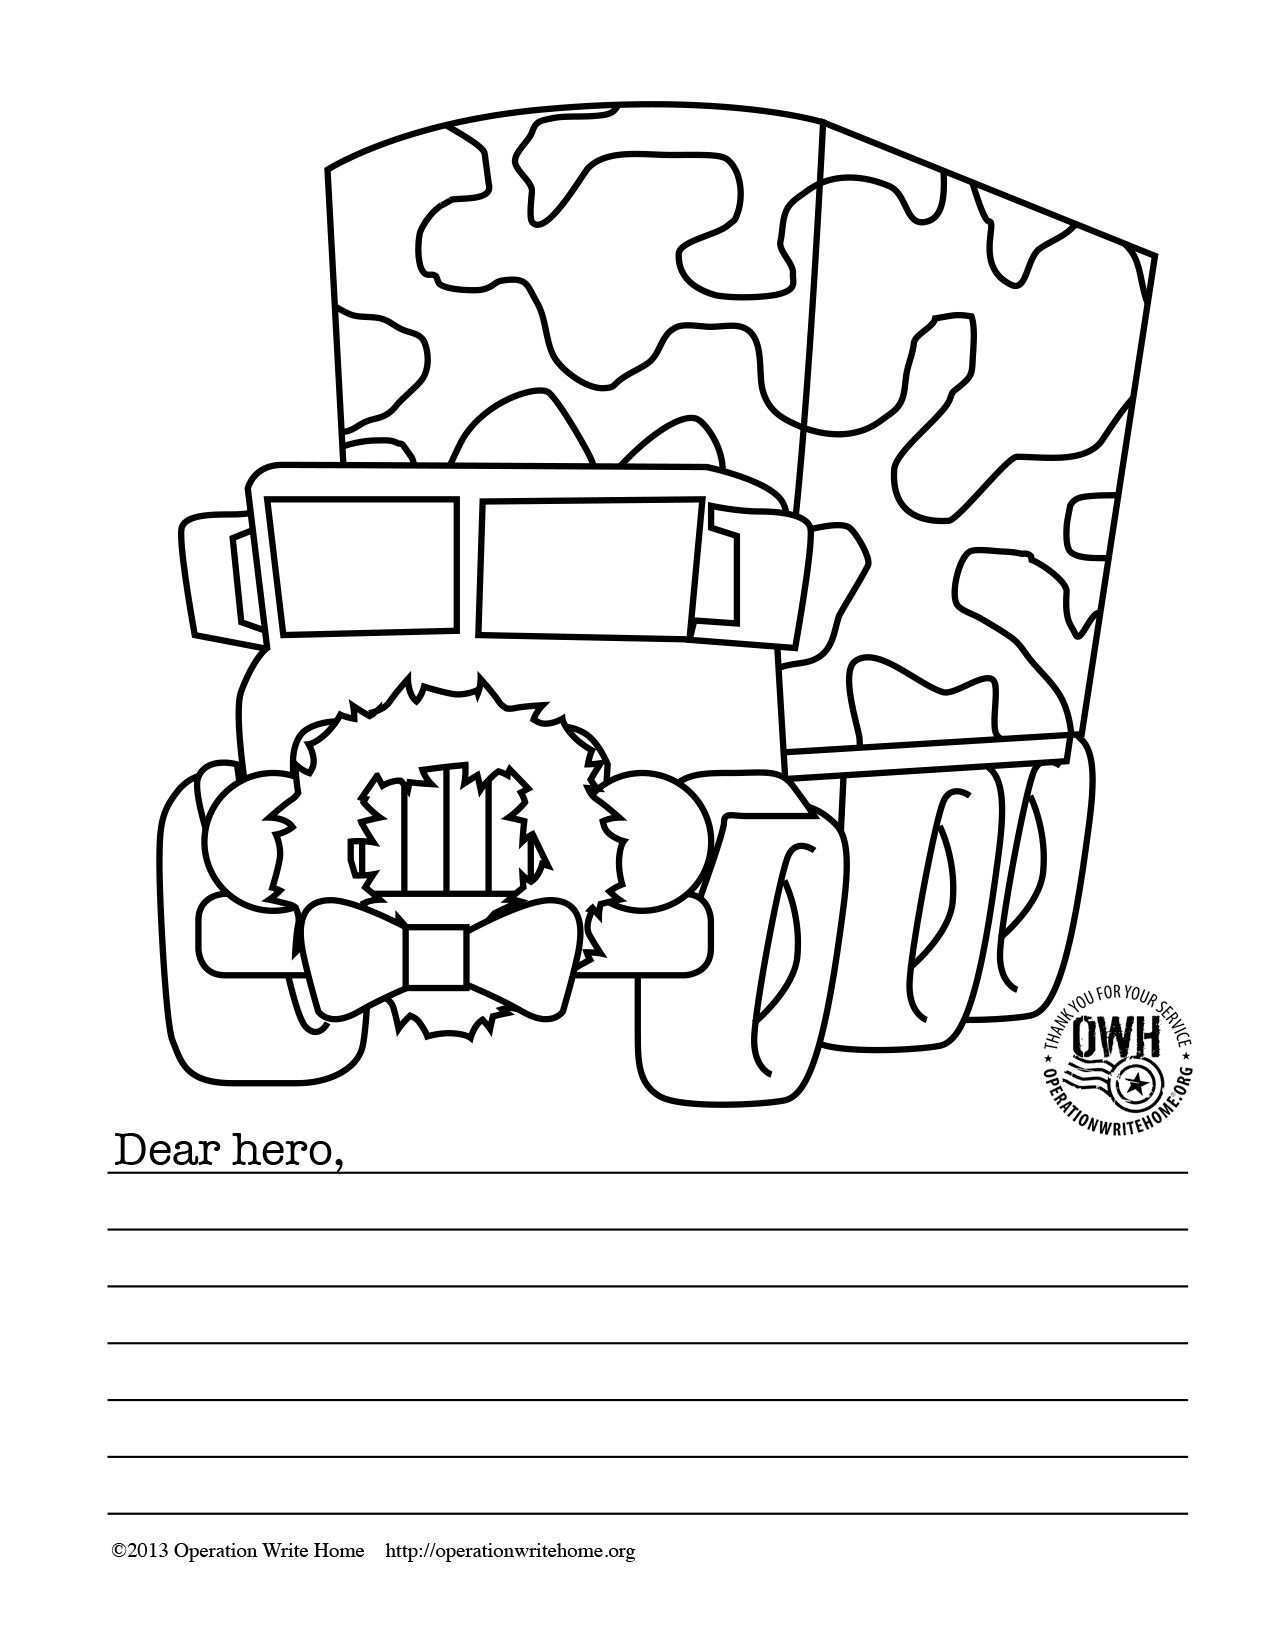 34 How To Create Holiday Card Coloring Templates Download with Holiday Card Coloring Templates